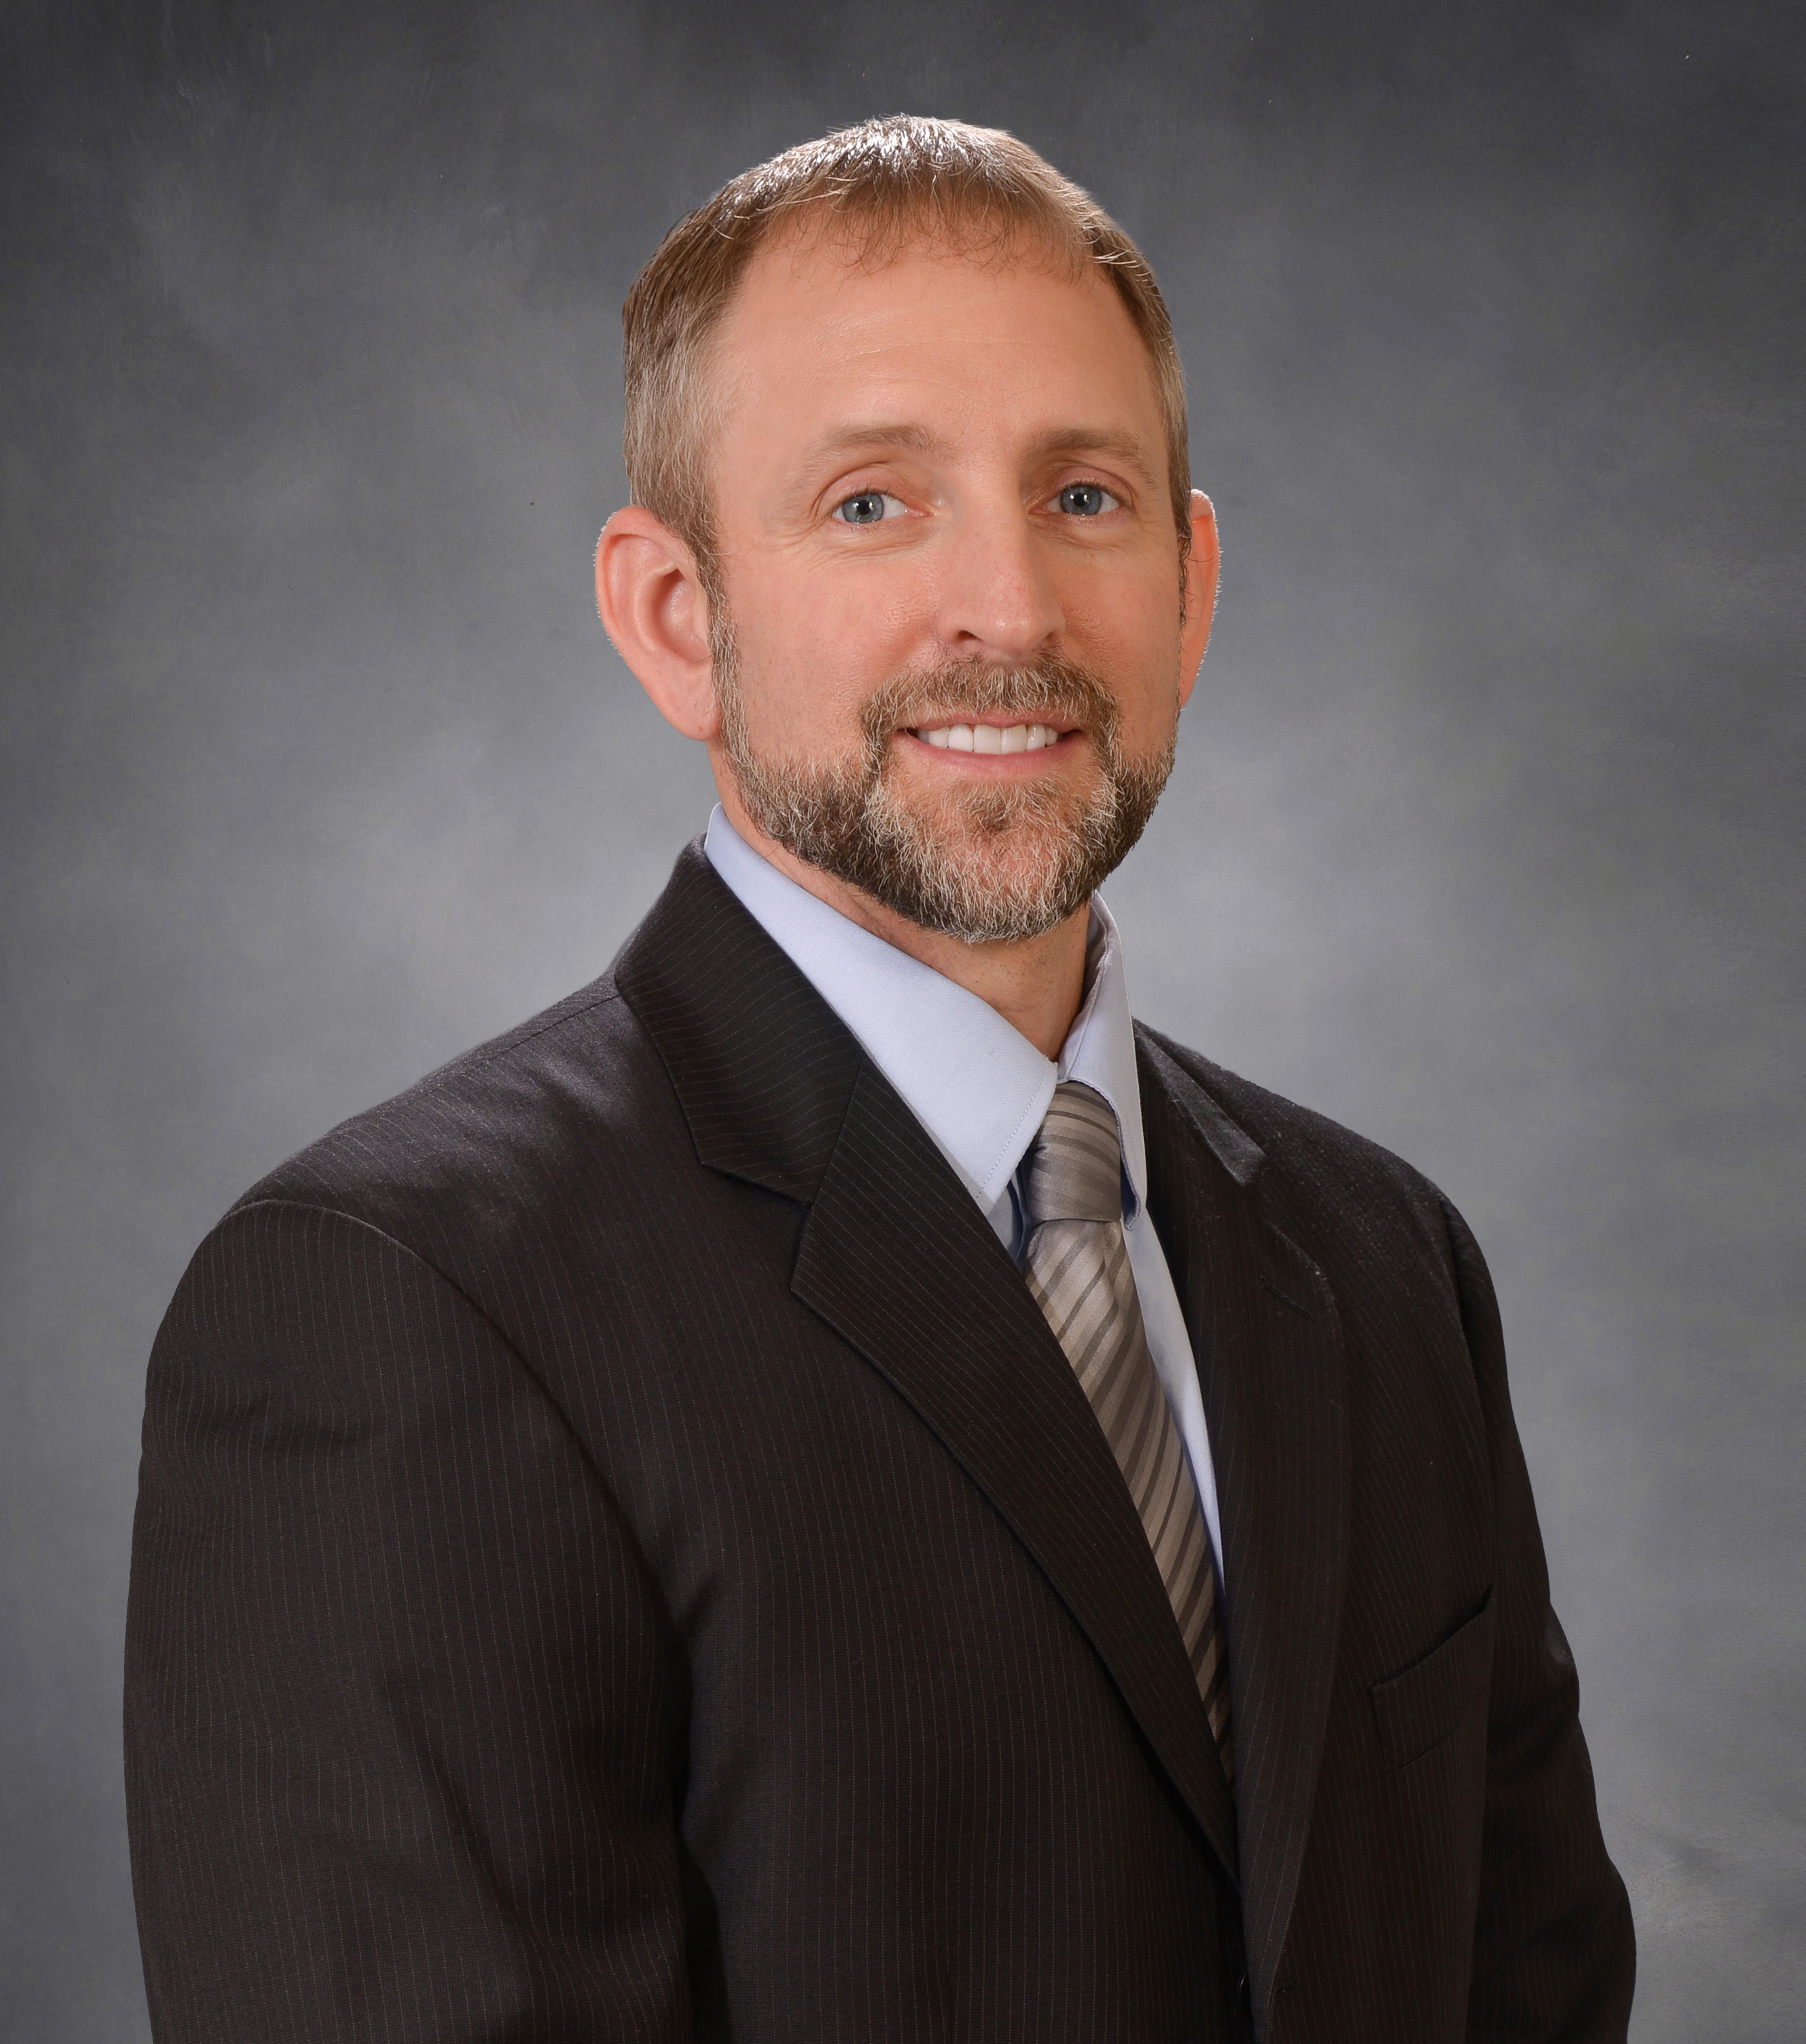 Picture of Russell Hill, East Valley School District Superintendent